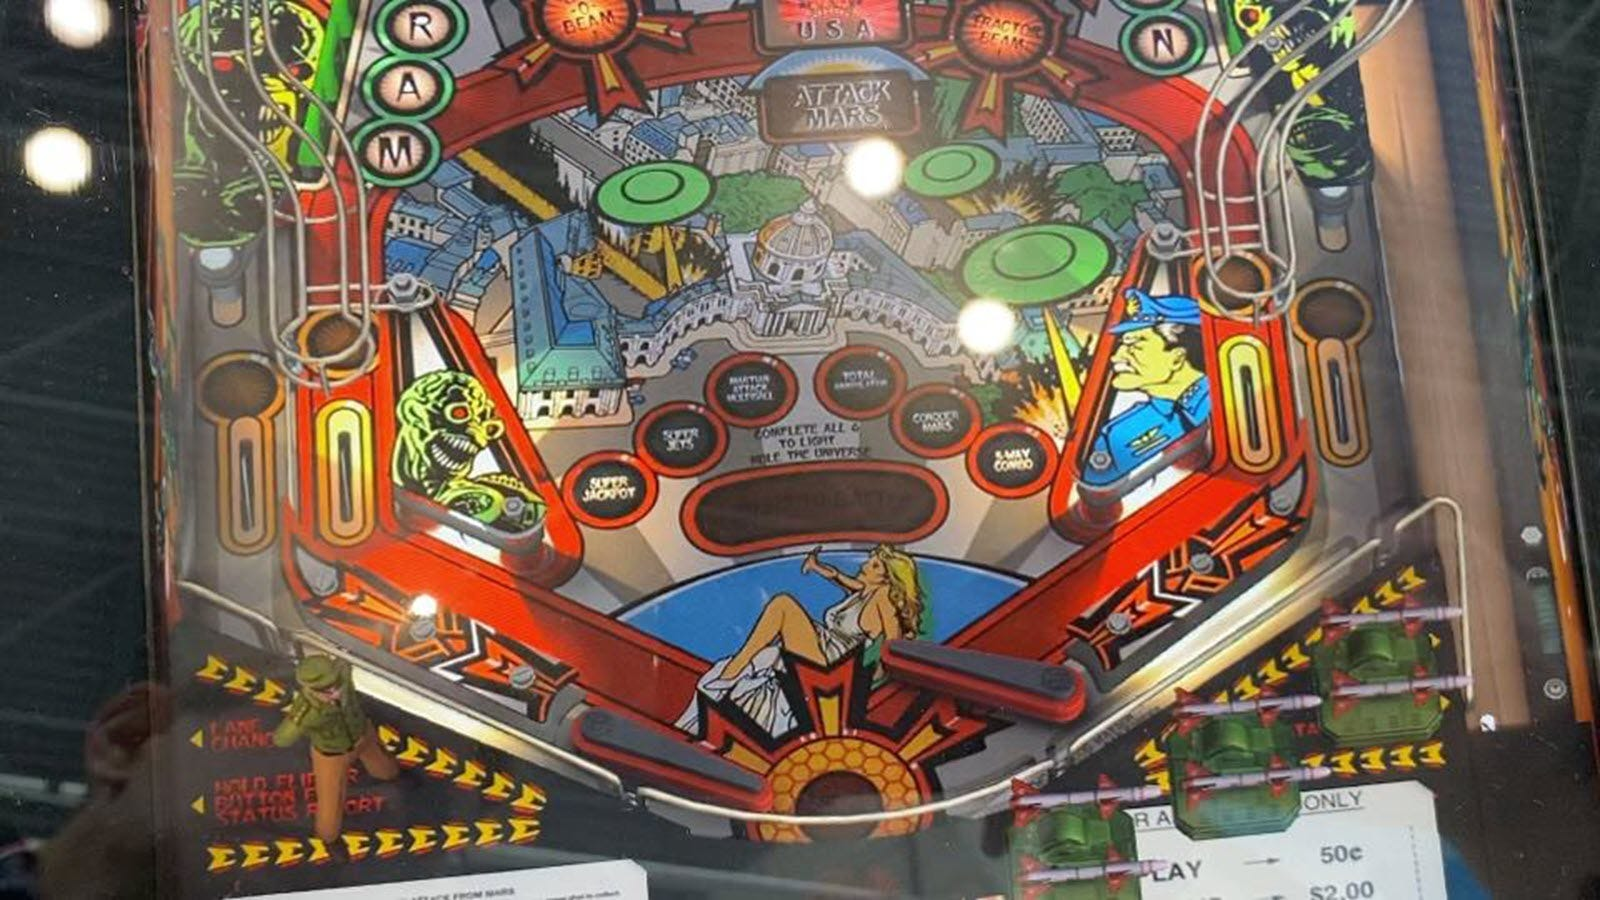 A closeup of a pinball playfield, showing bumpers and scoring options.